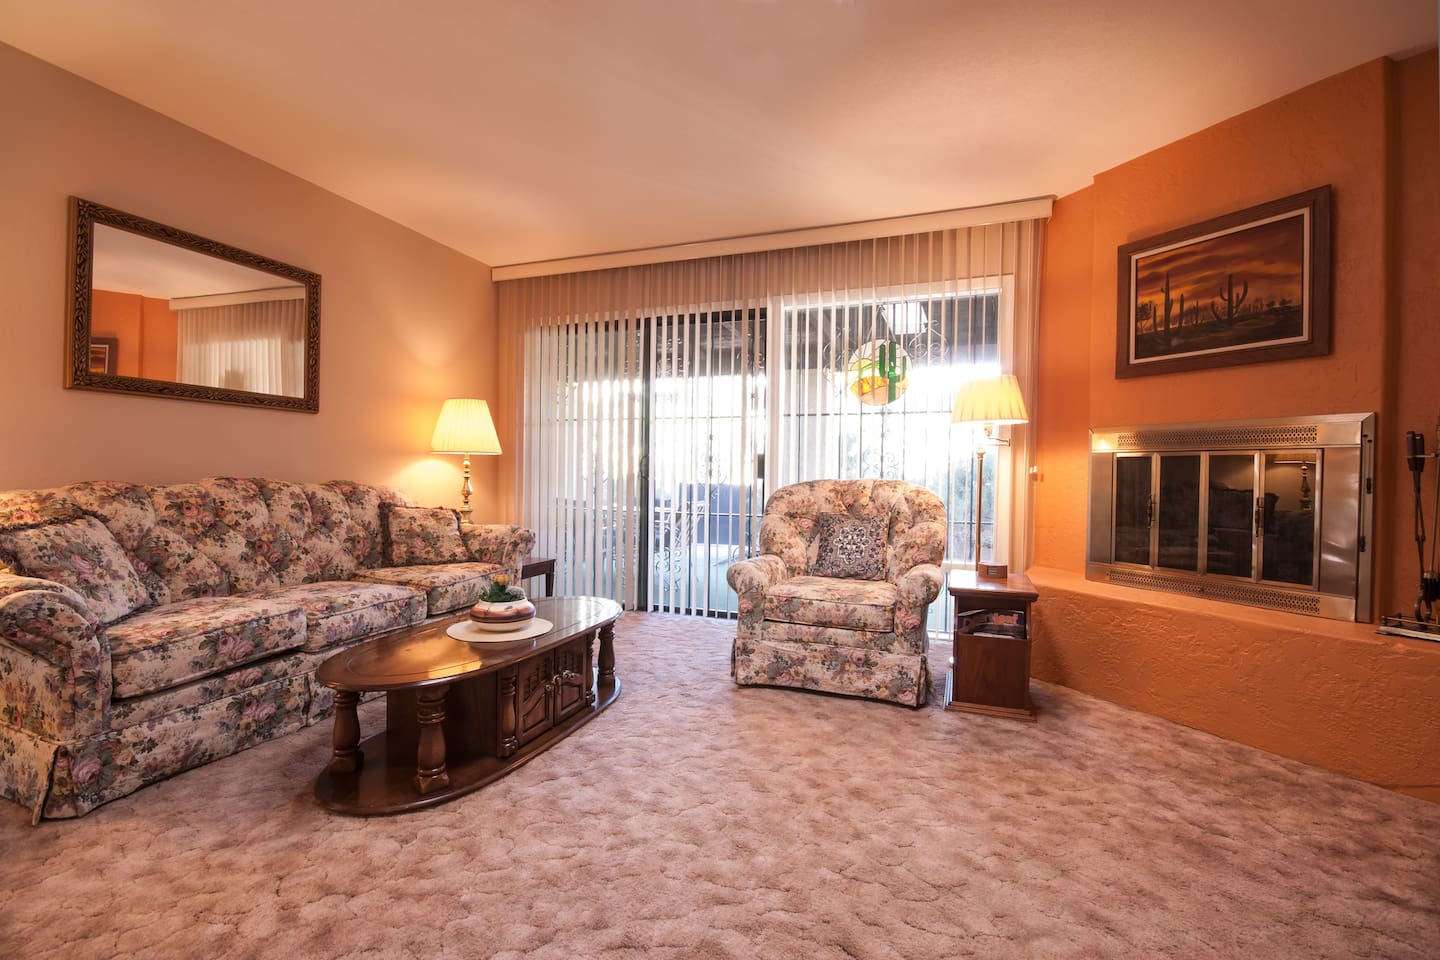 Our living room features a working fireplace and comfortable seating. It opens right onto the back patio.